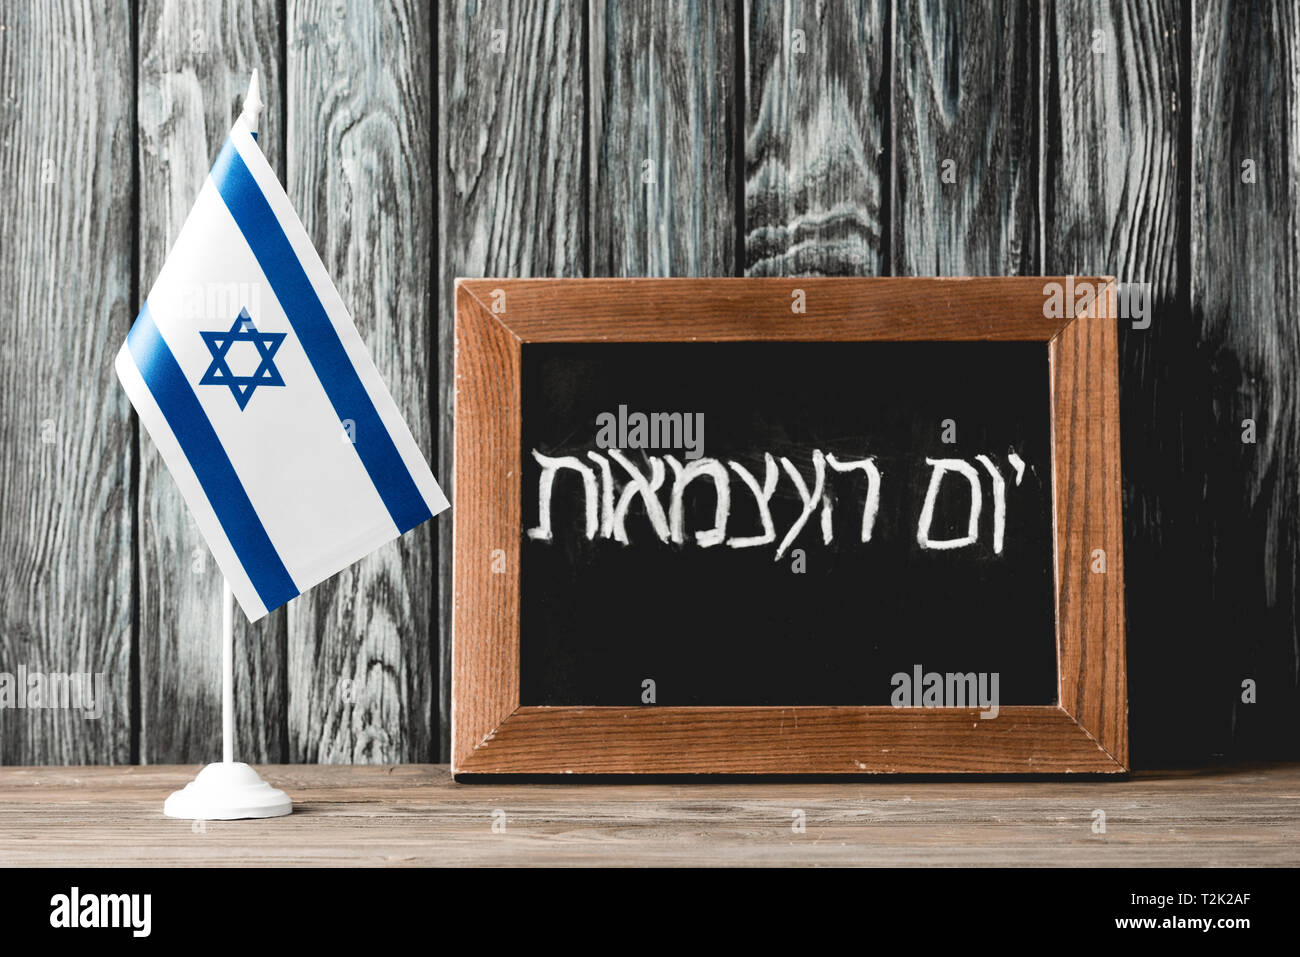 chalkboard with hebrew lettering near national flag of israel with blue star of david - Stock Image